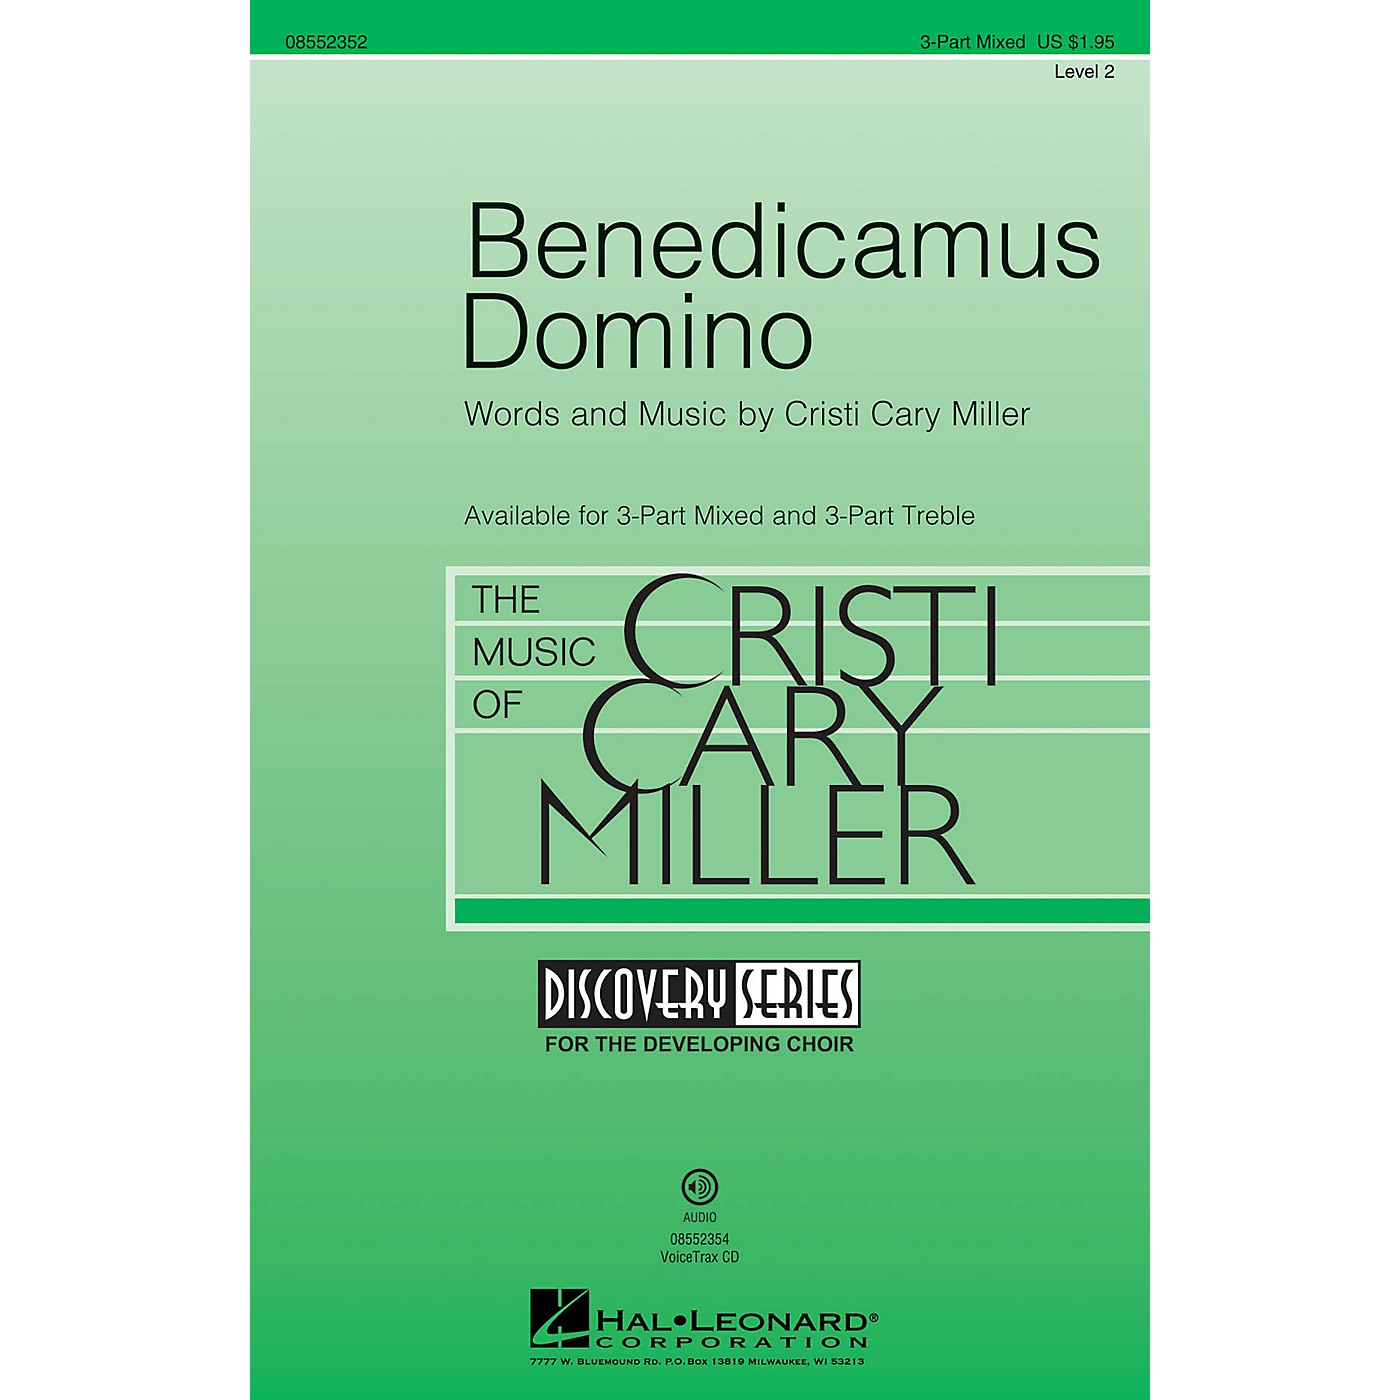 Hal Leonard Benedicamus Domino (Discovery Level 2) 3-Part Mixed composed by Cristi Cary Miller thumbnail